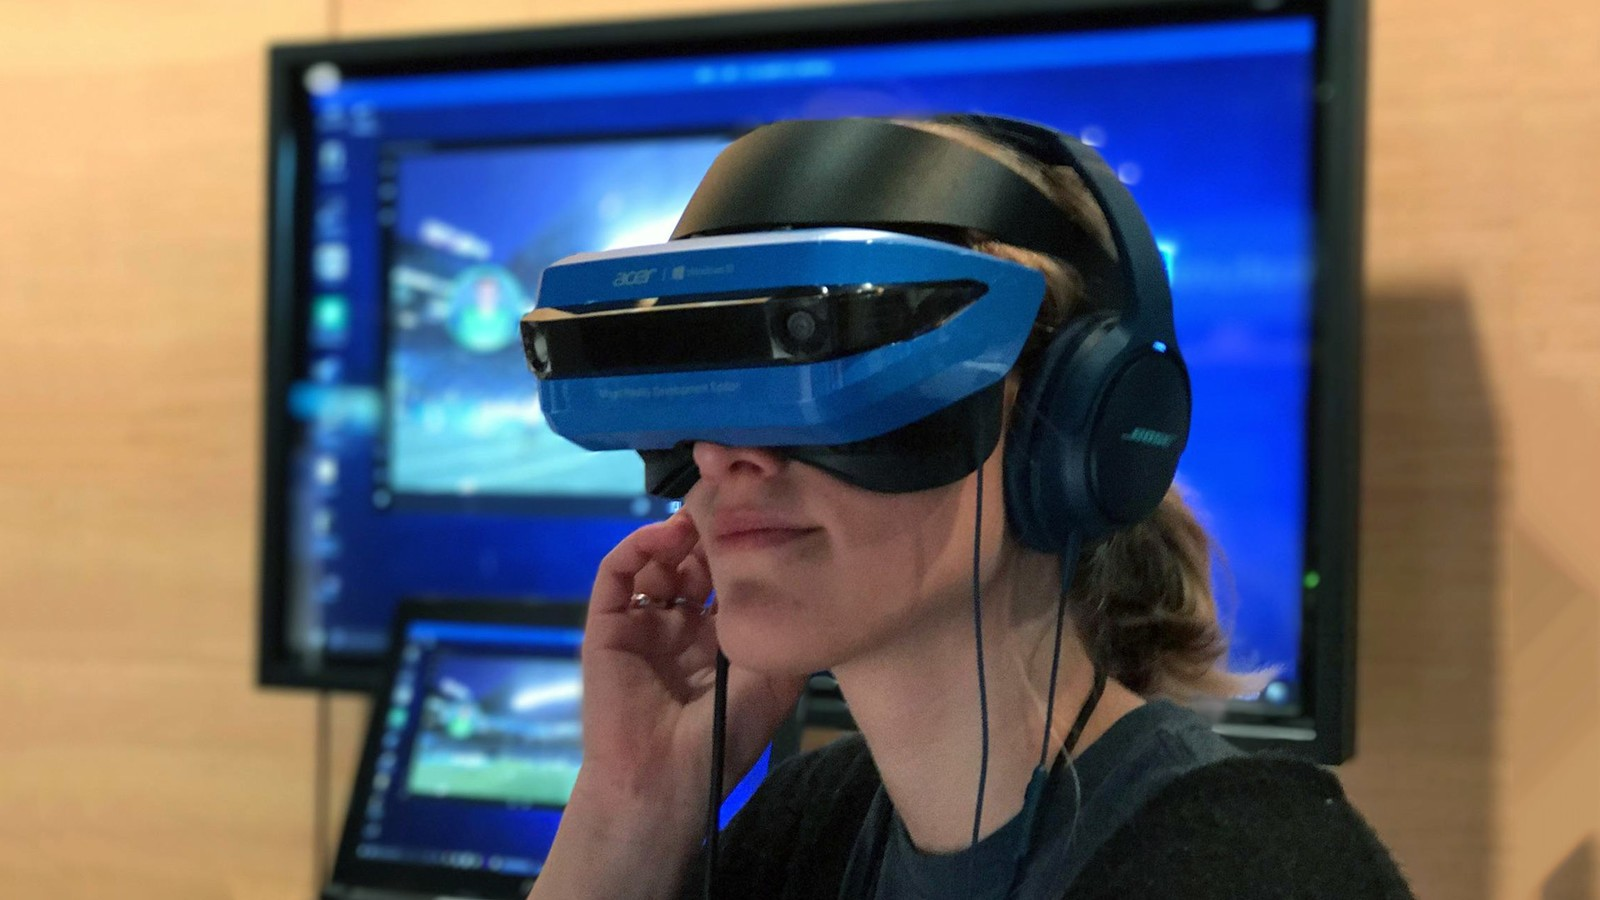 Tips and tricks for the best VR experience while wearing